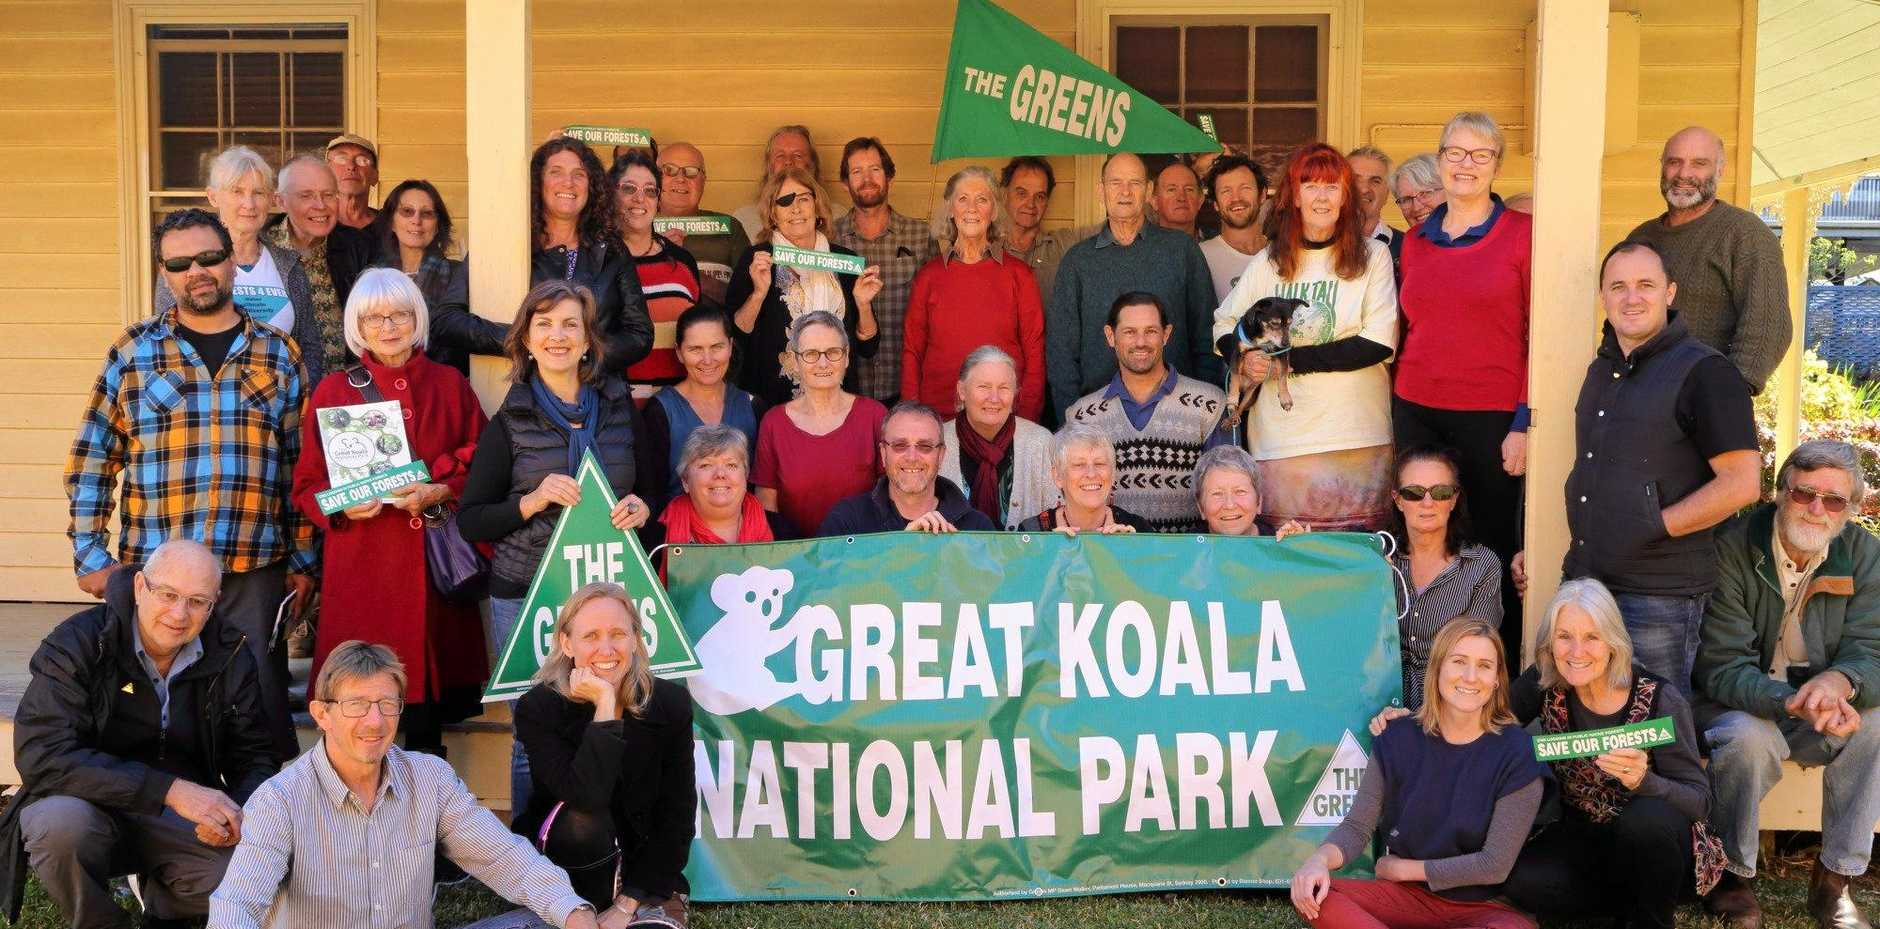 Greens supporters in Bellingen attended a Forest Summit to discuss issues surrounding forests in the local region.